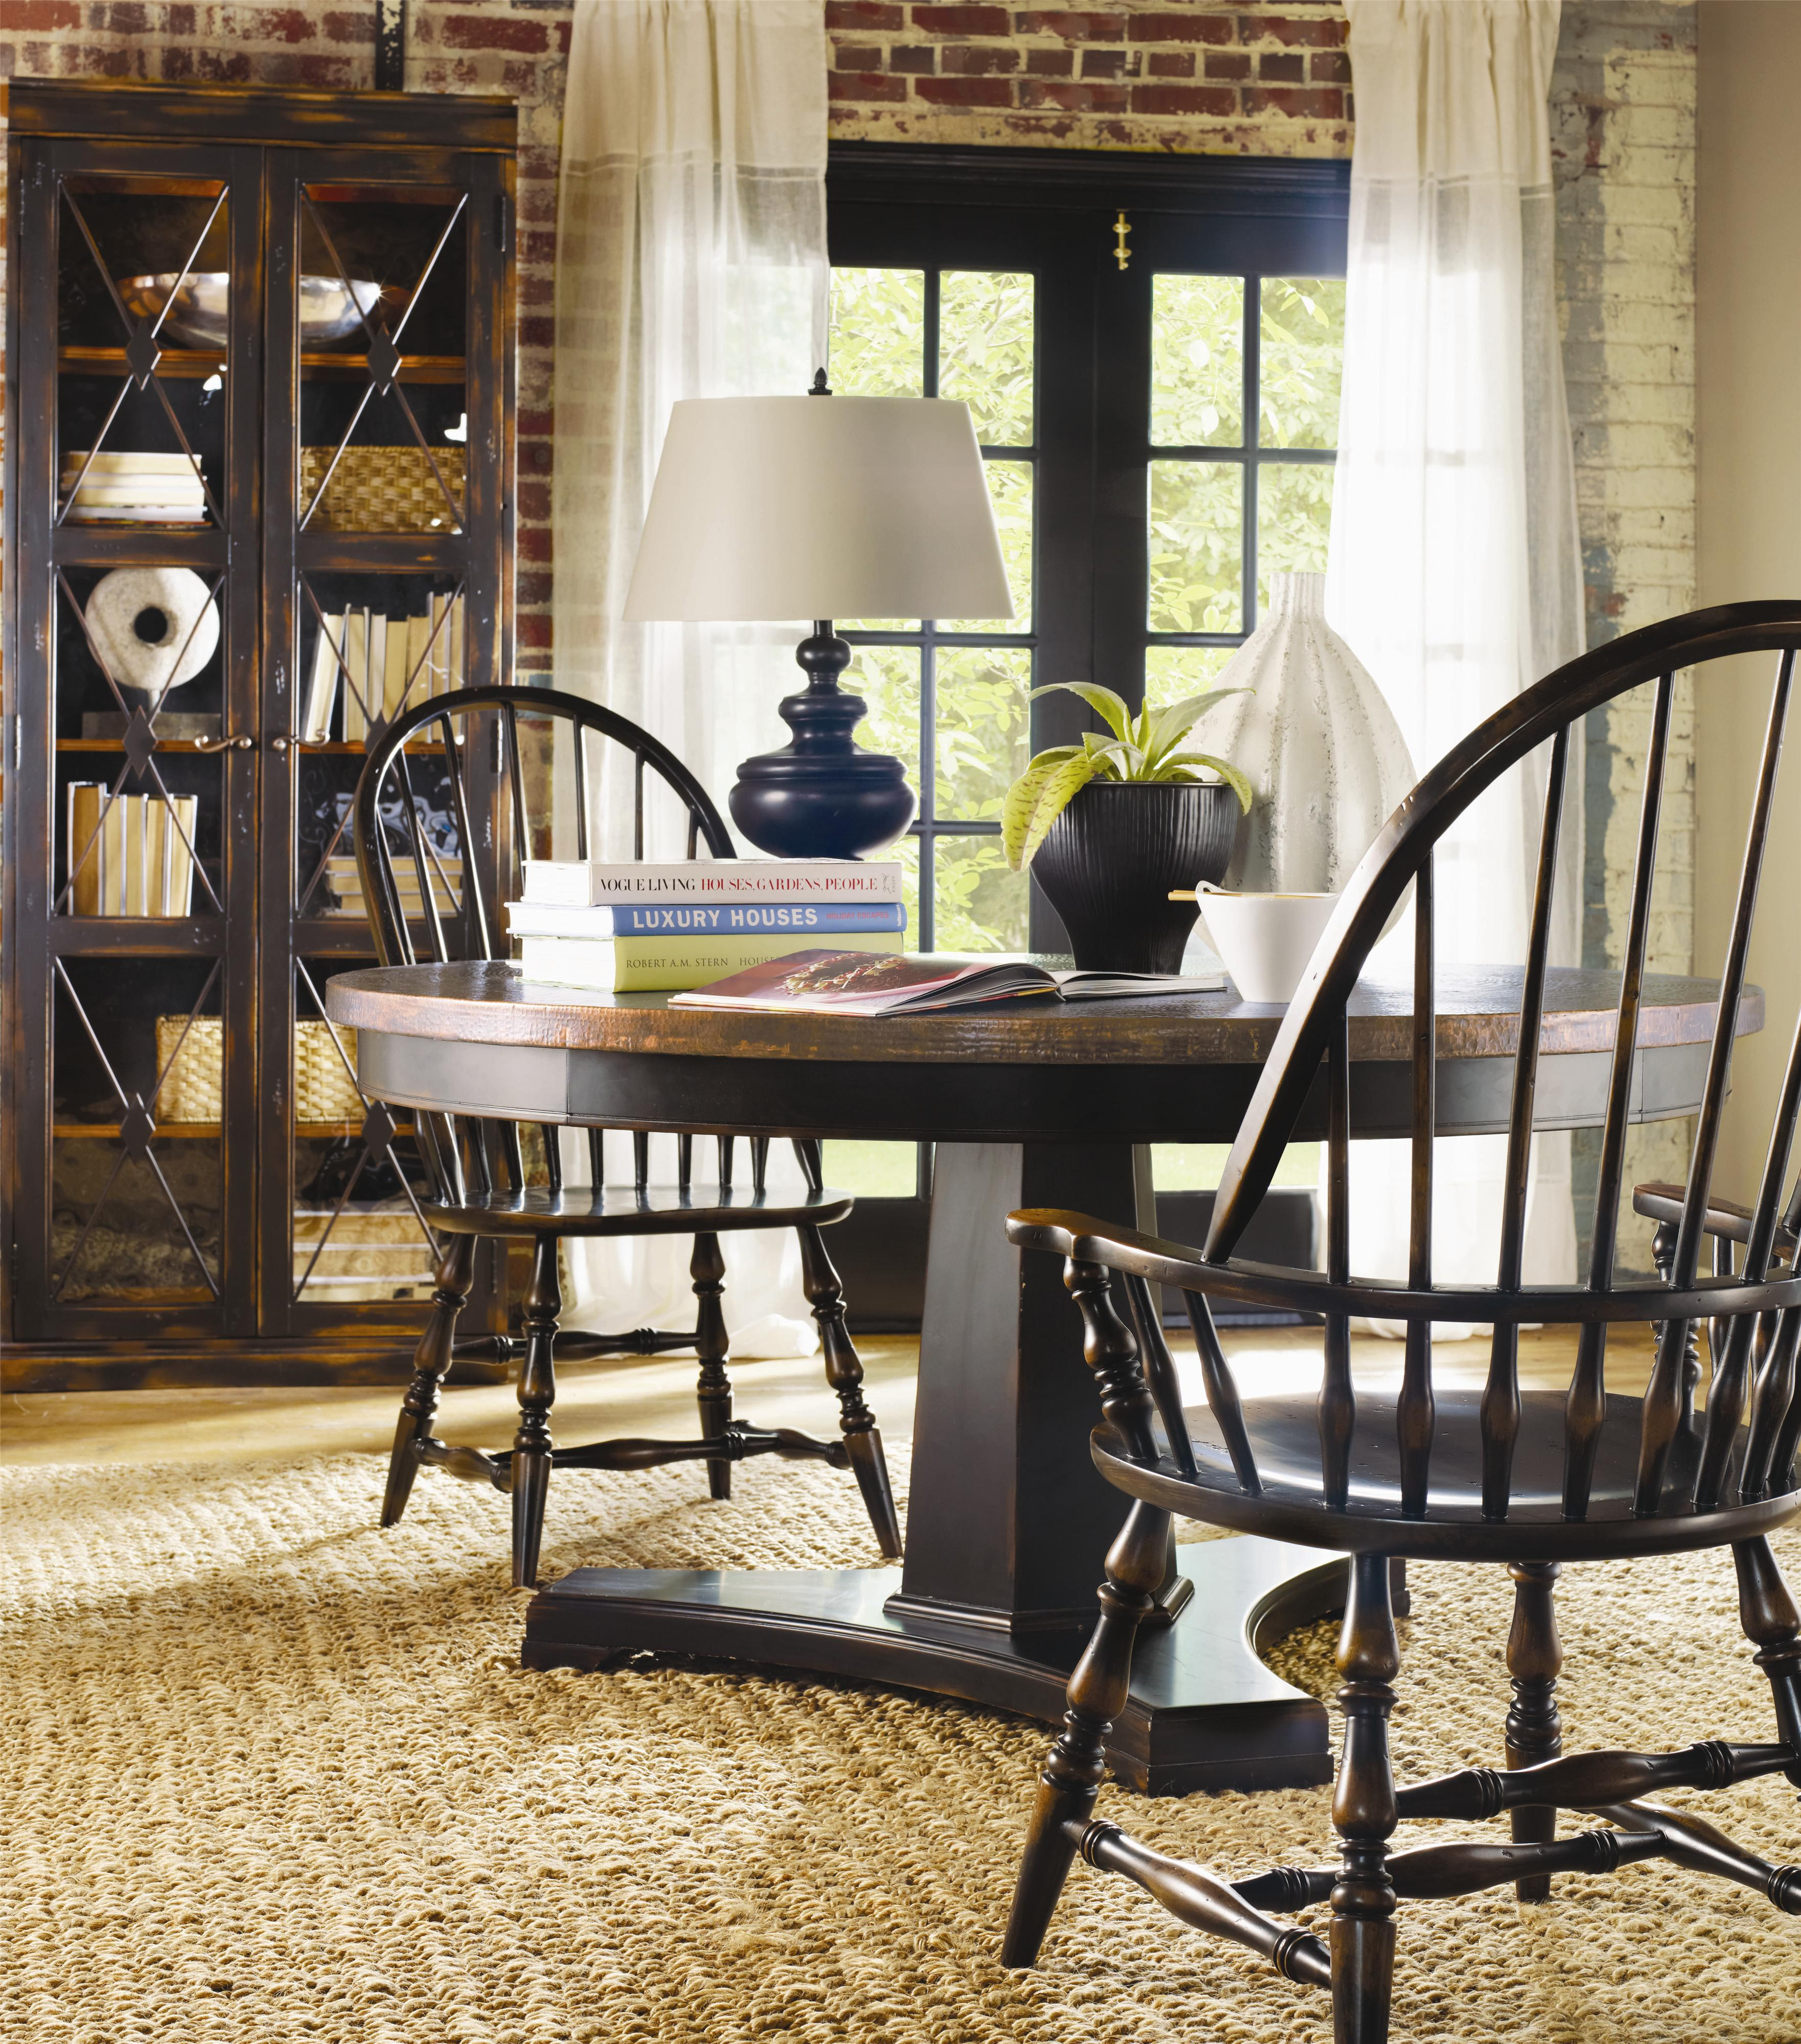 Sanctuary 3 Piece Table & Chair Set by Hooker Furniture at Baer's Furniture